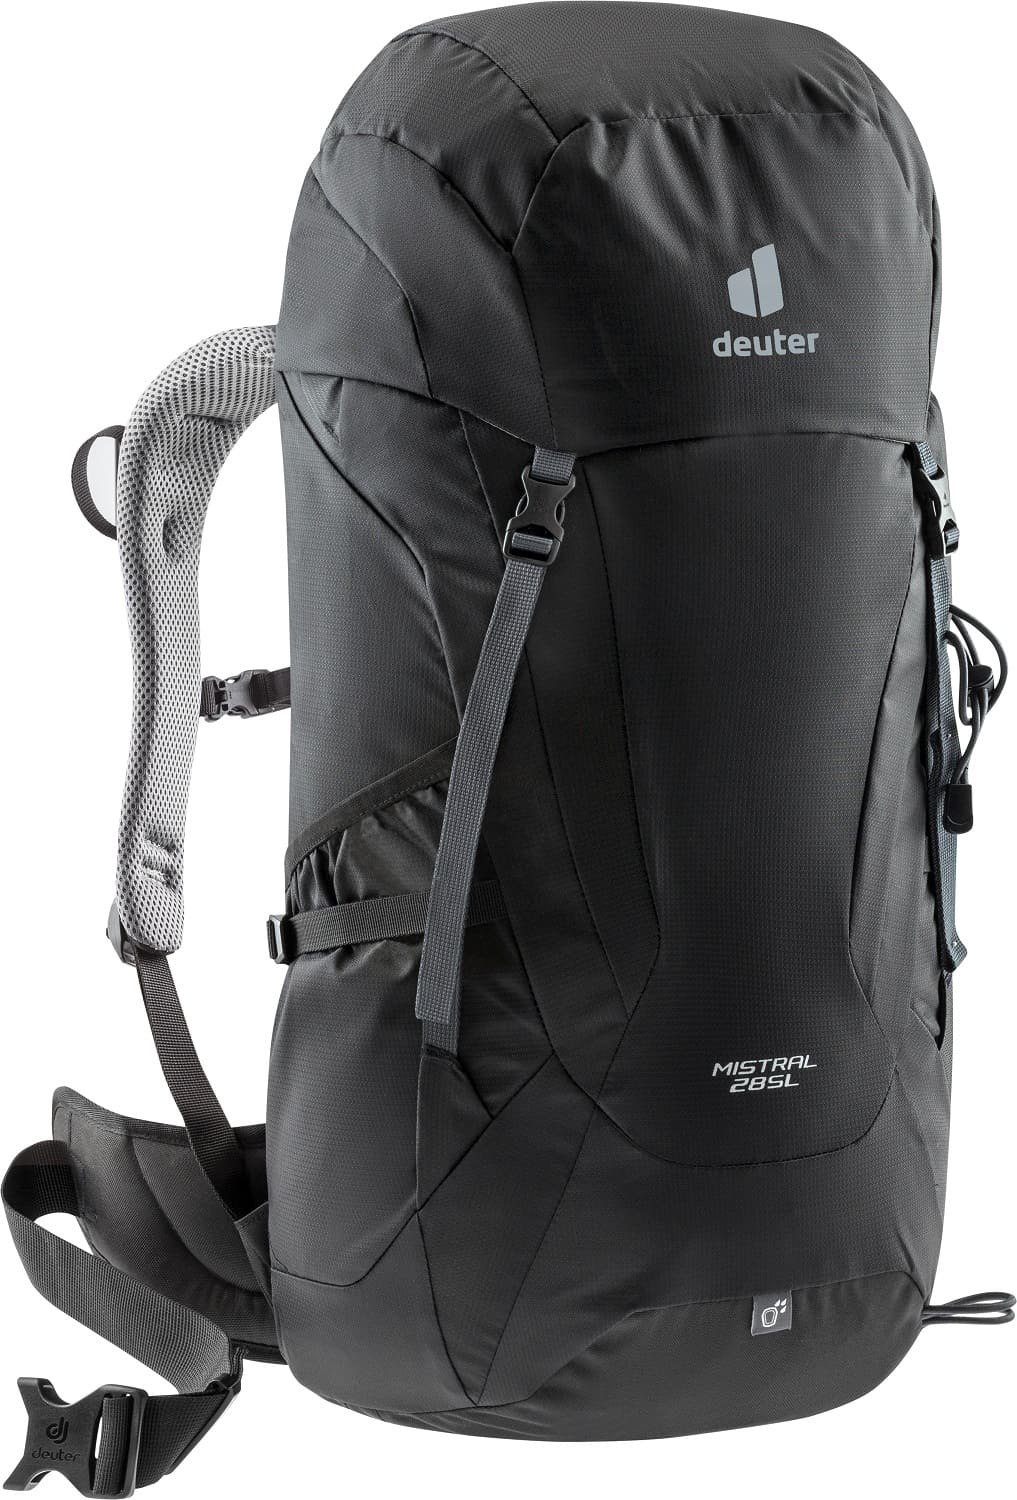 DEUTER MISTRAL 28 SL - BLACK